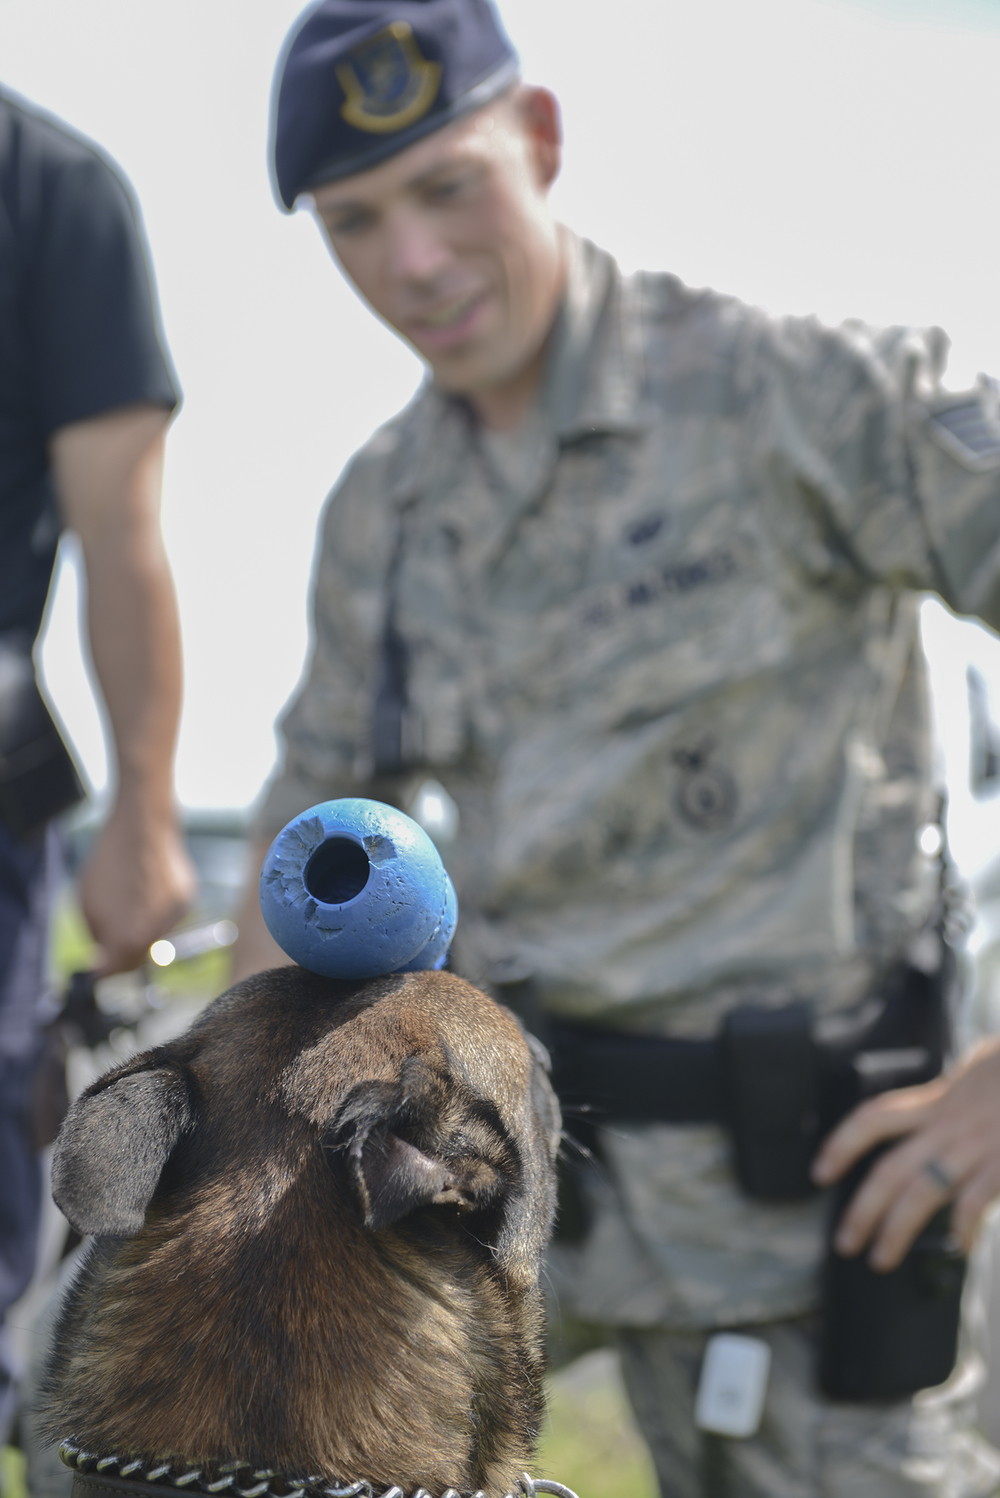 Topa, 374th Security Forces Squadron military working dog, balances a kong on his head at Yokota Air Base, Japan, July 24, 2015. The toy is used to reward Topa for good practices and behaviors and to show his discipline during demonstrations. (U.S. Air Force photo by Airman 1st Class David C. Danford/Released)